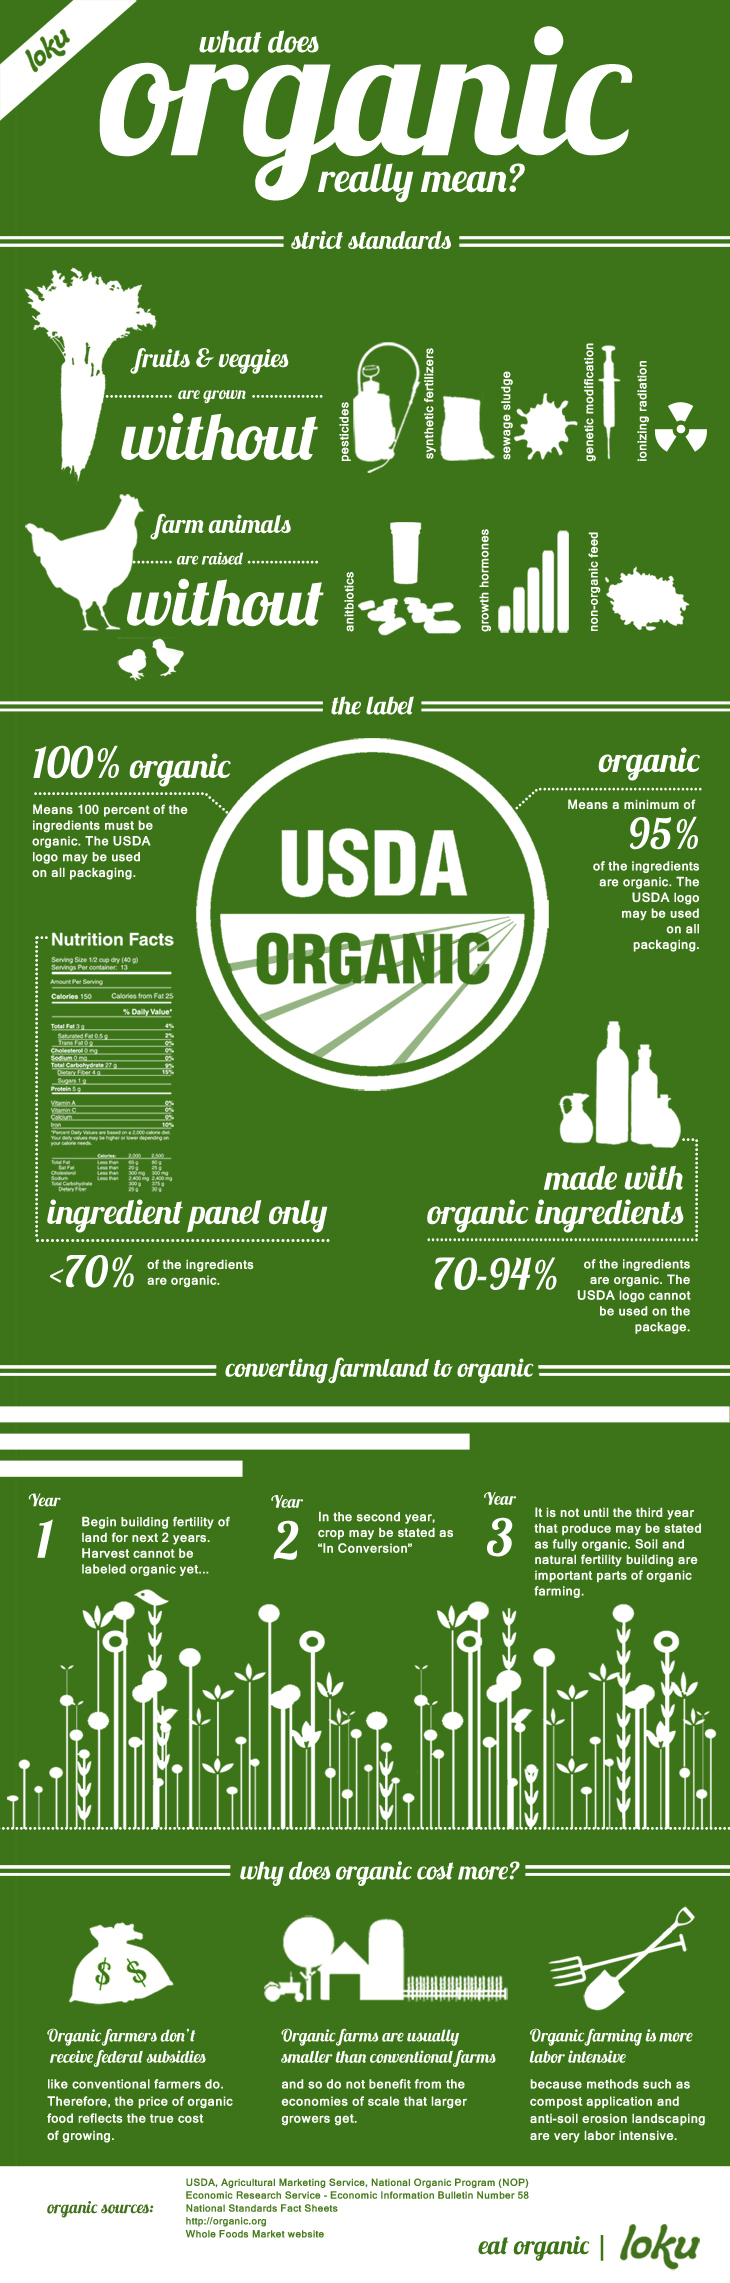 What Is Organic Food Mean